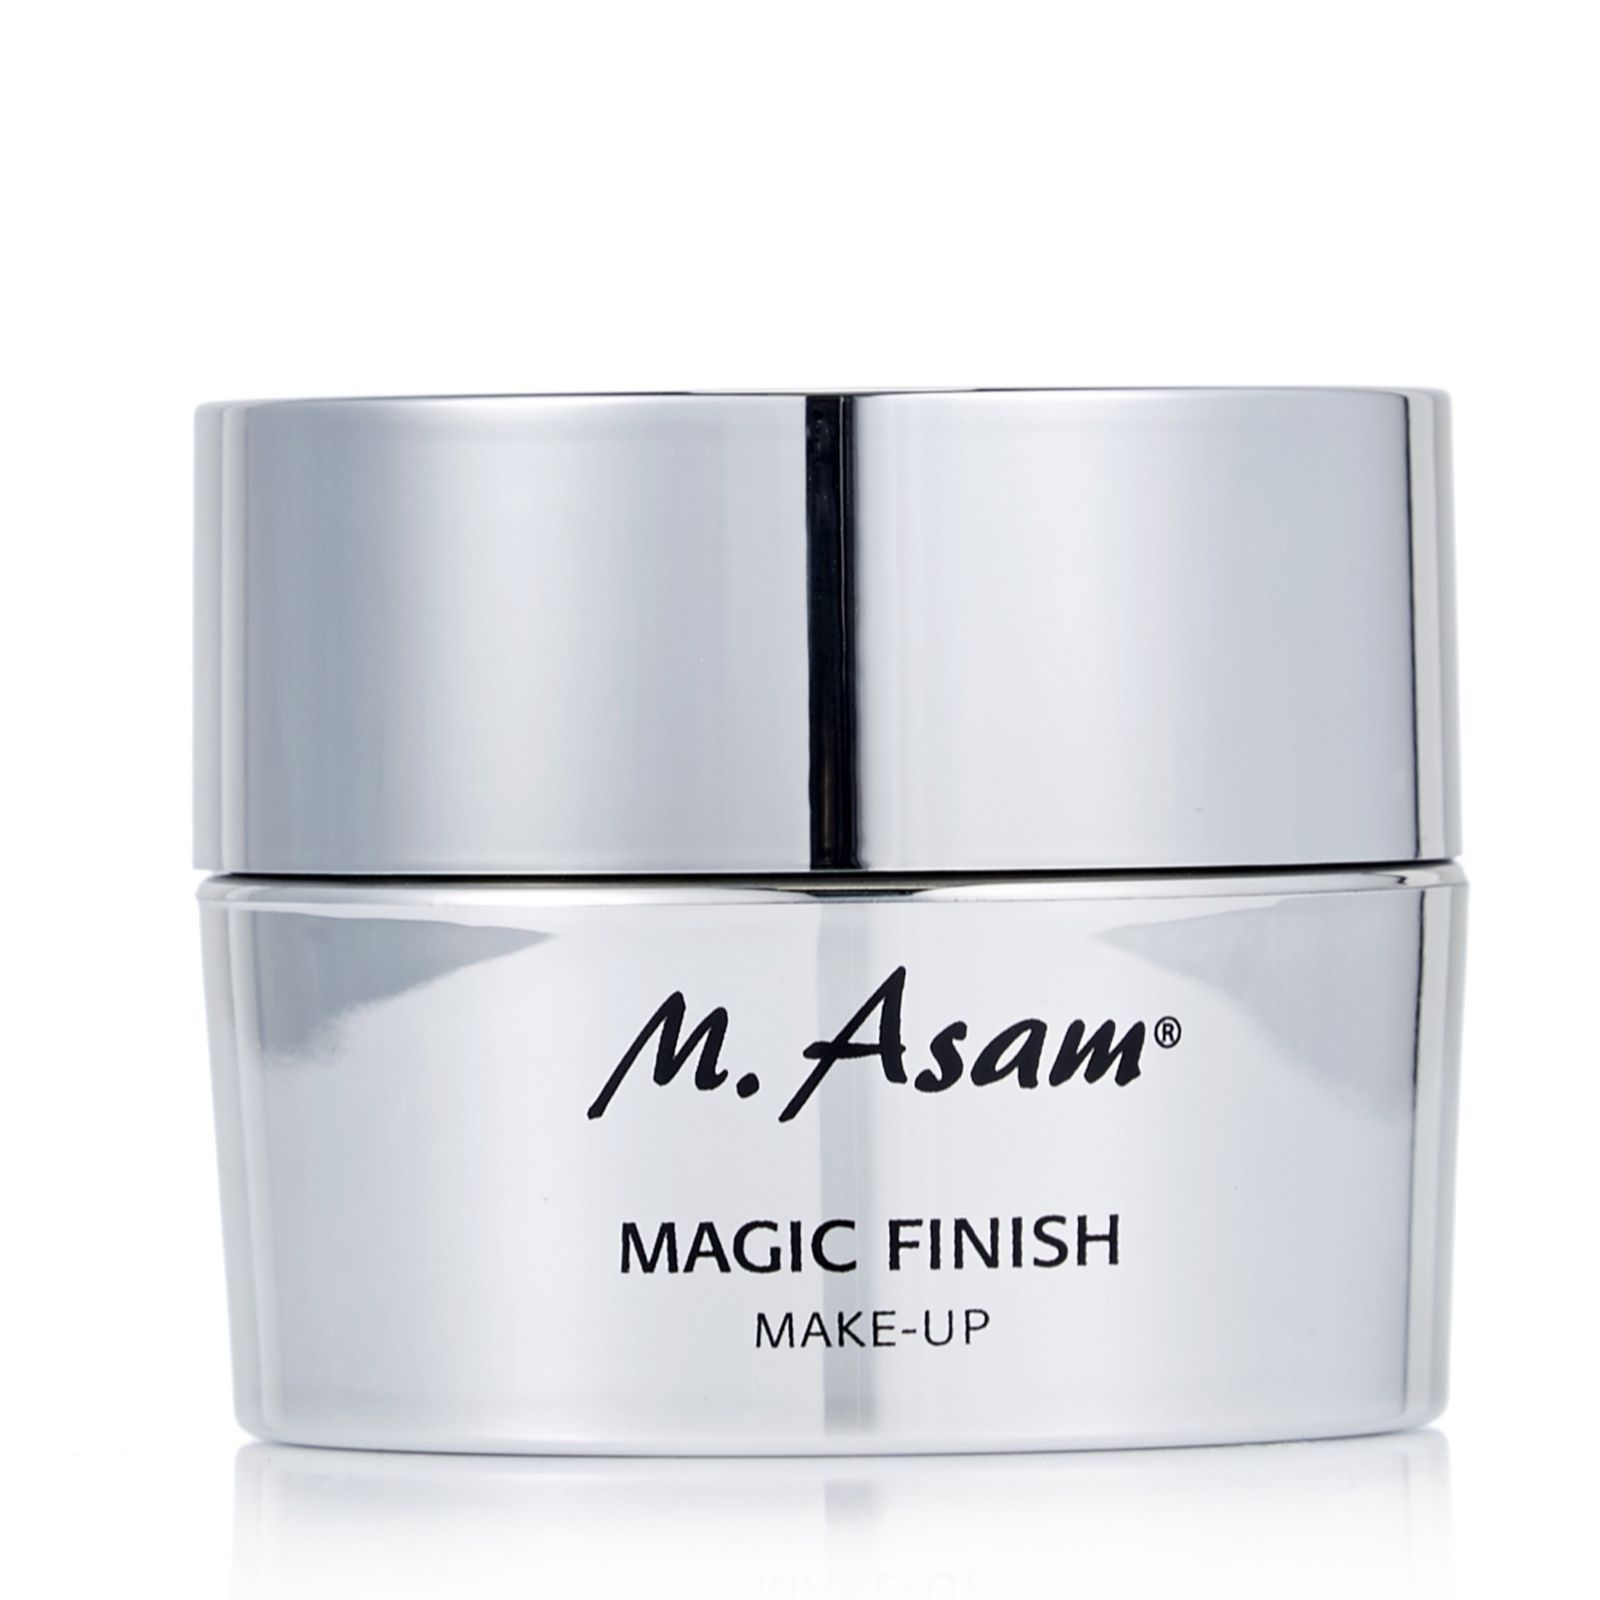 M Asam Magic Finish Makeup Mousse 30ml Qvc Uk With Images Makeup Beauty Skin Care Mousse